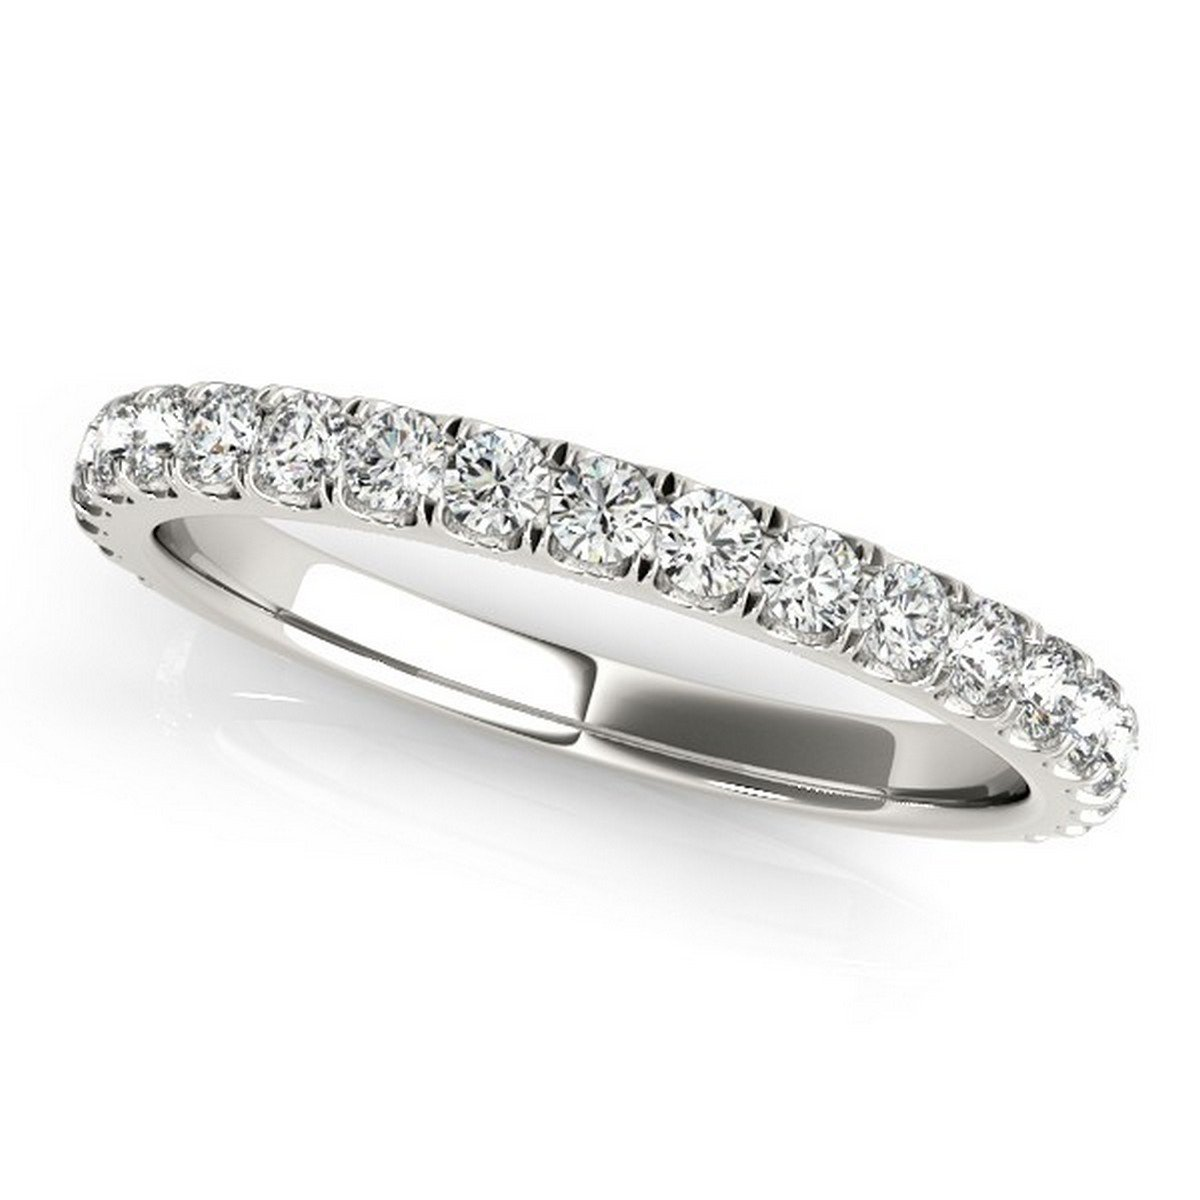 Elegant French Pave Set Diamond Wedding Ring Semi Eternity Style in Platinum with 0.45 carats